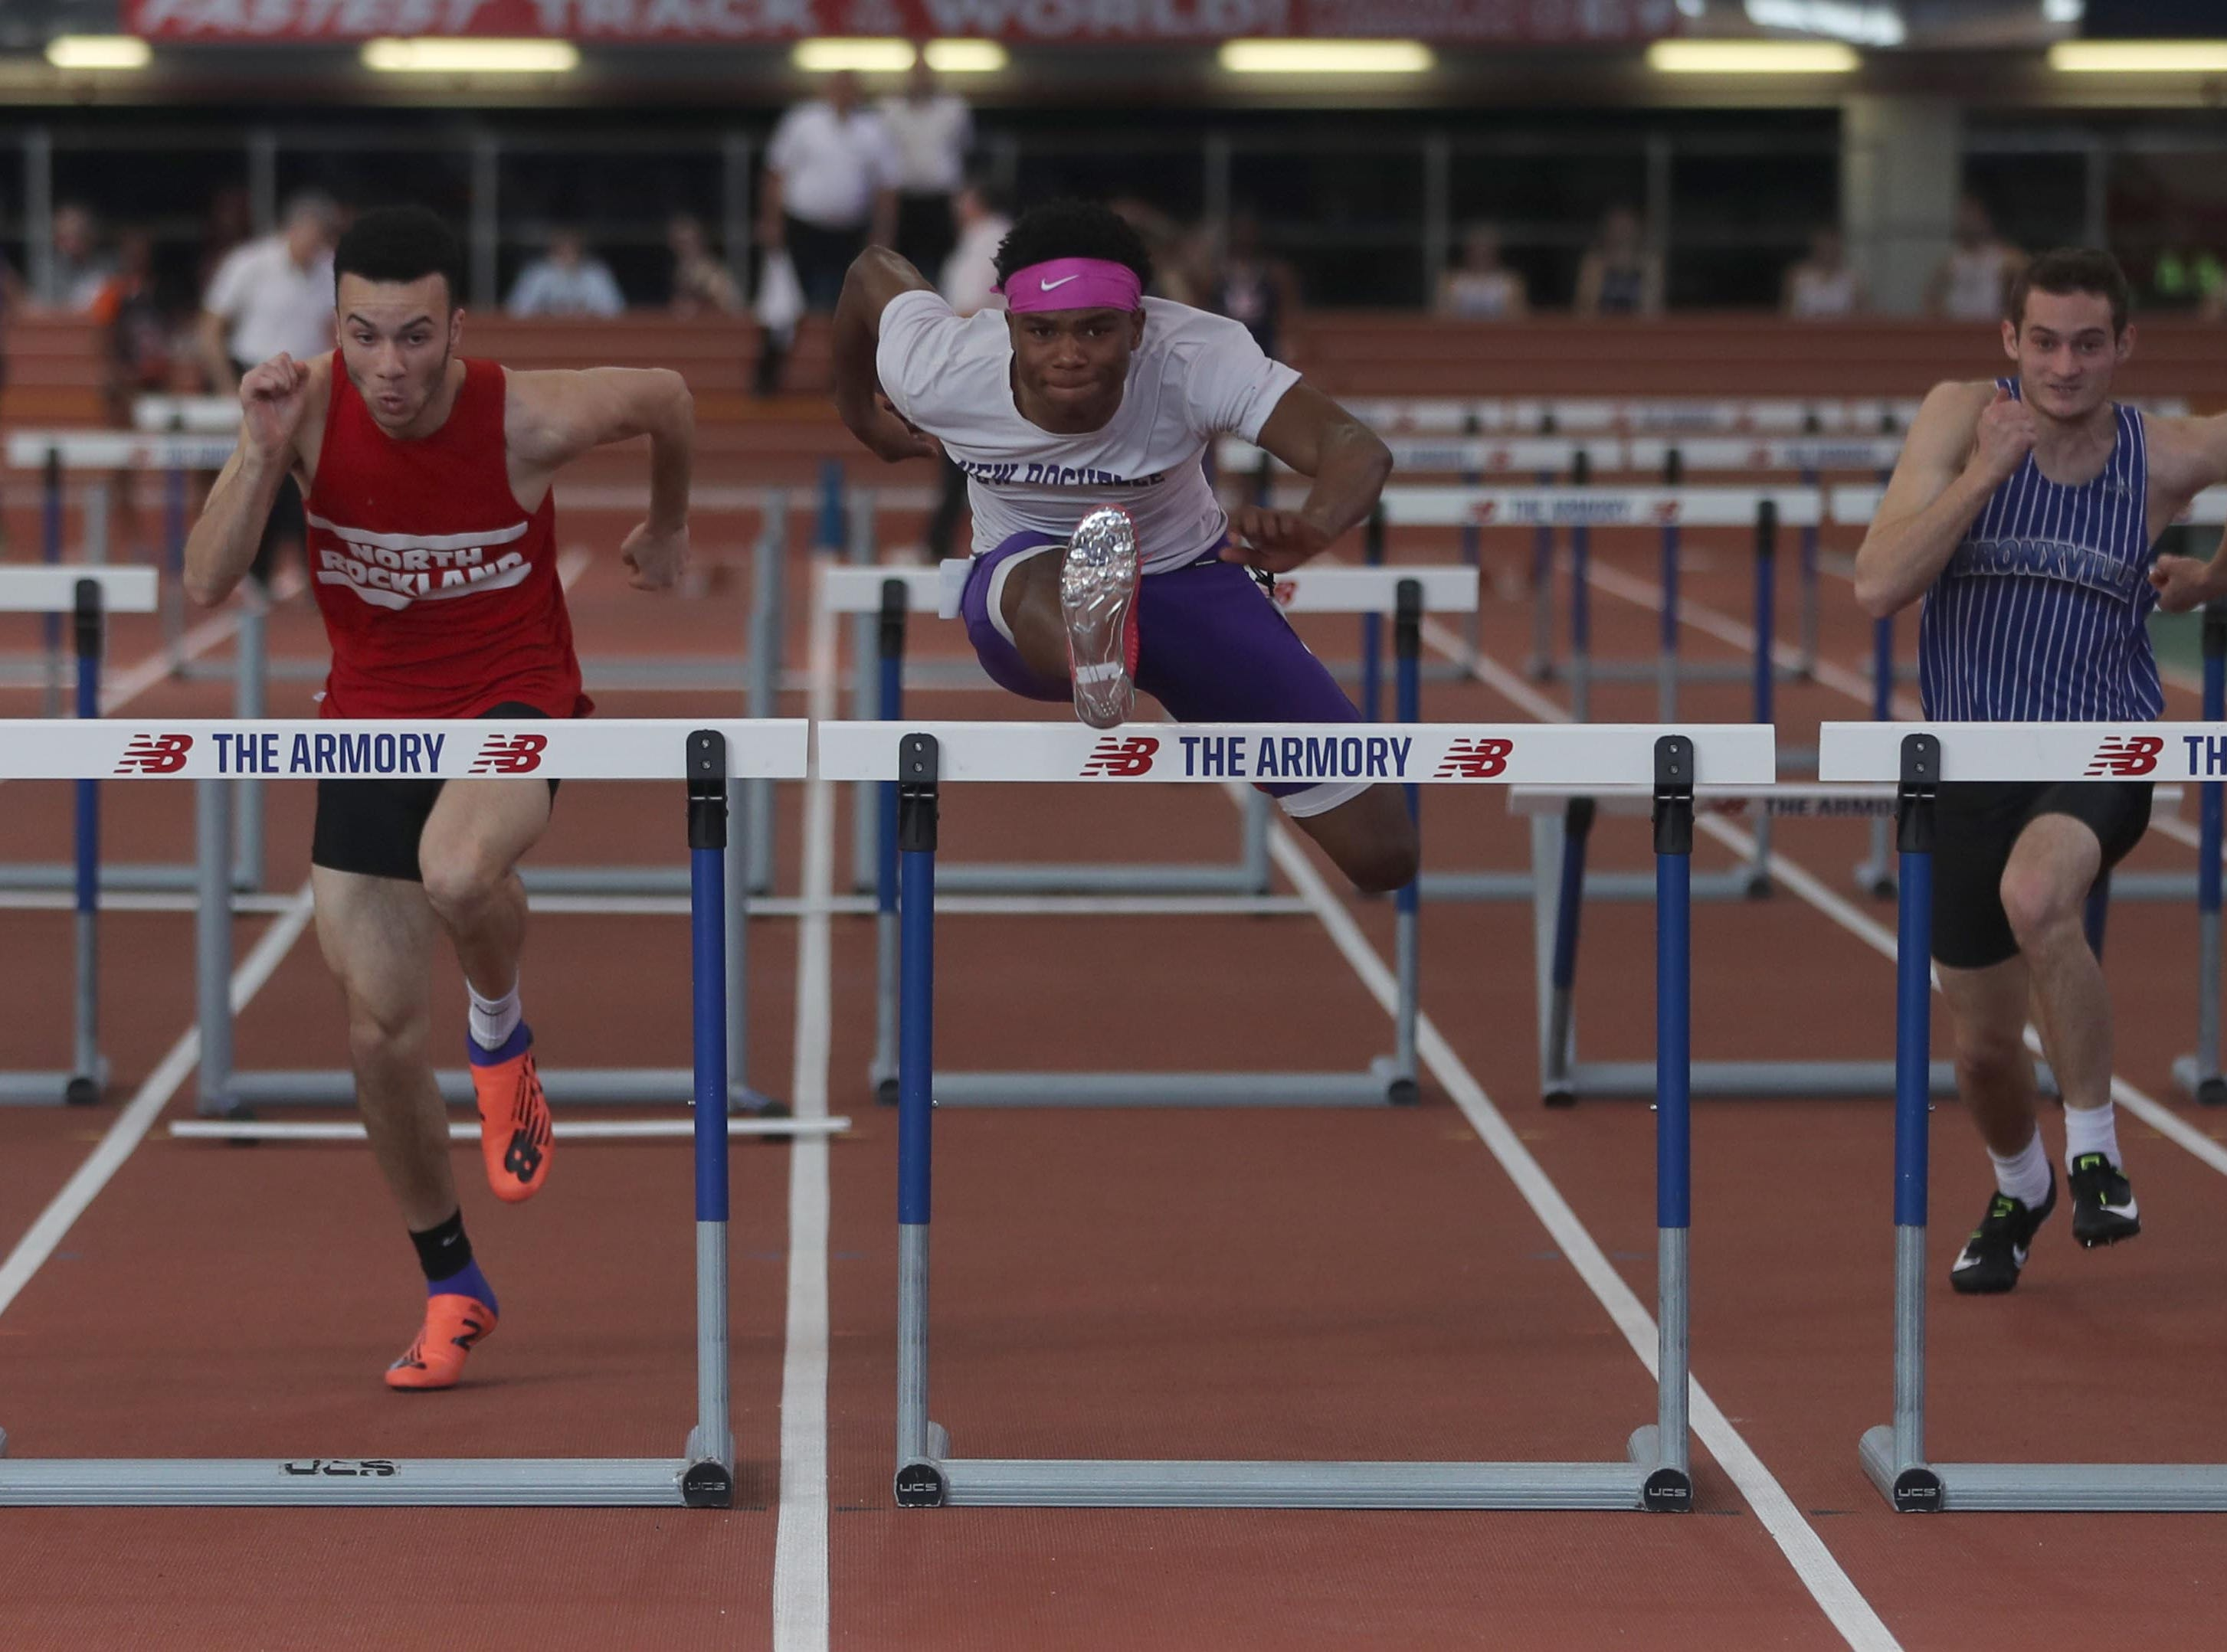 Jessie Parson of New Rochelle won the 55 meter hurdles during the Section 1 New York State Track and Field State Qualifier at the New Balance Armory in Manhattan Feb. 17, 2019. Parson's won with a time of 7:36.